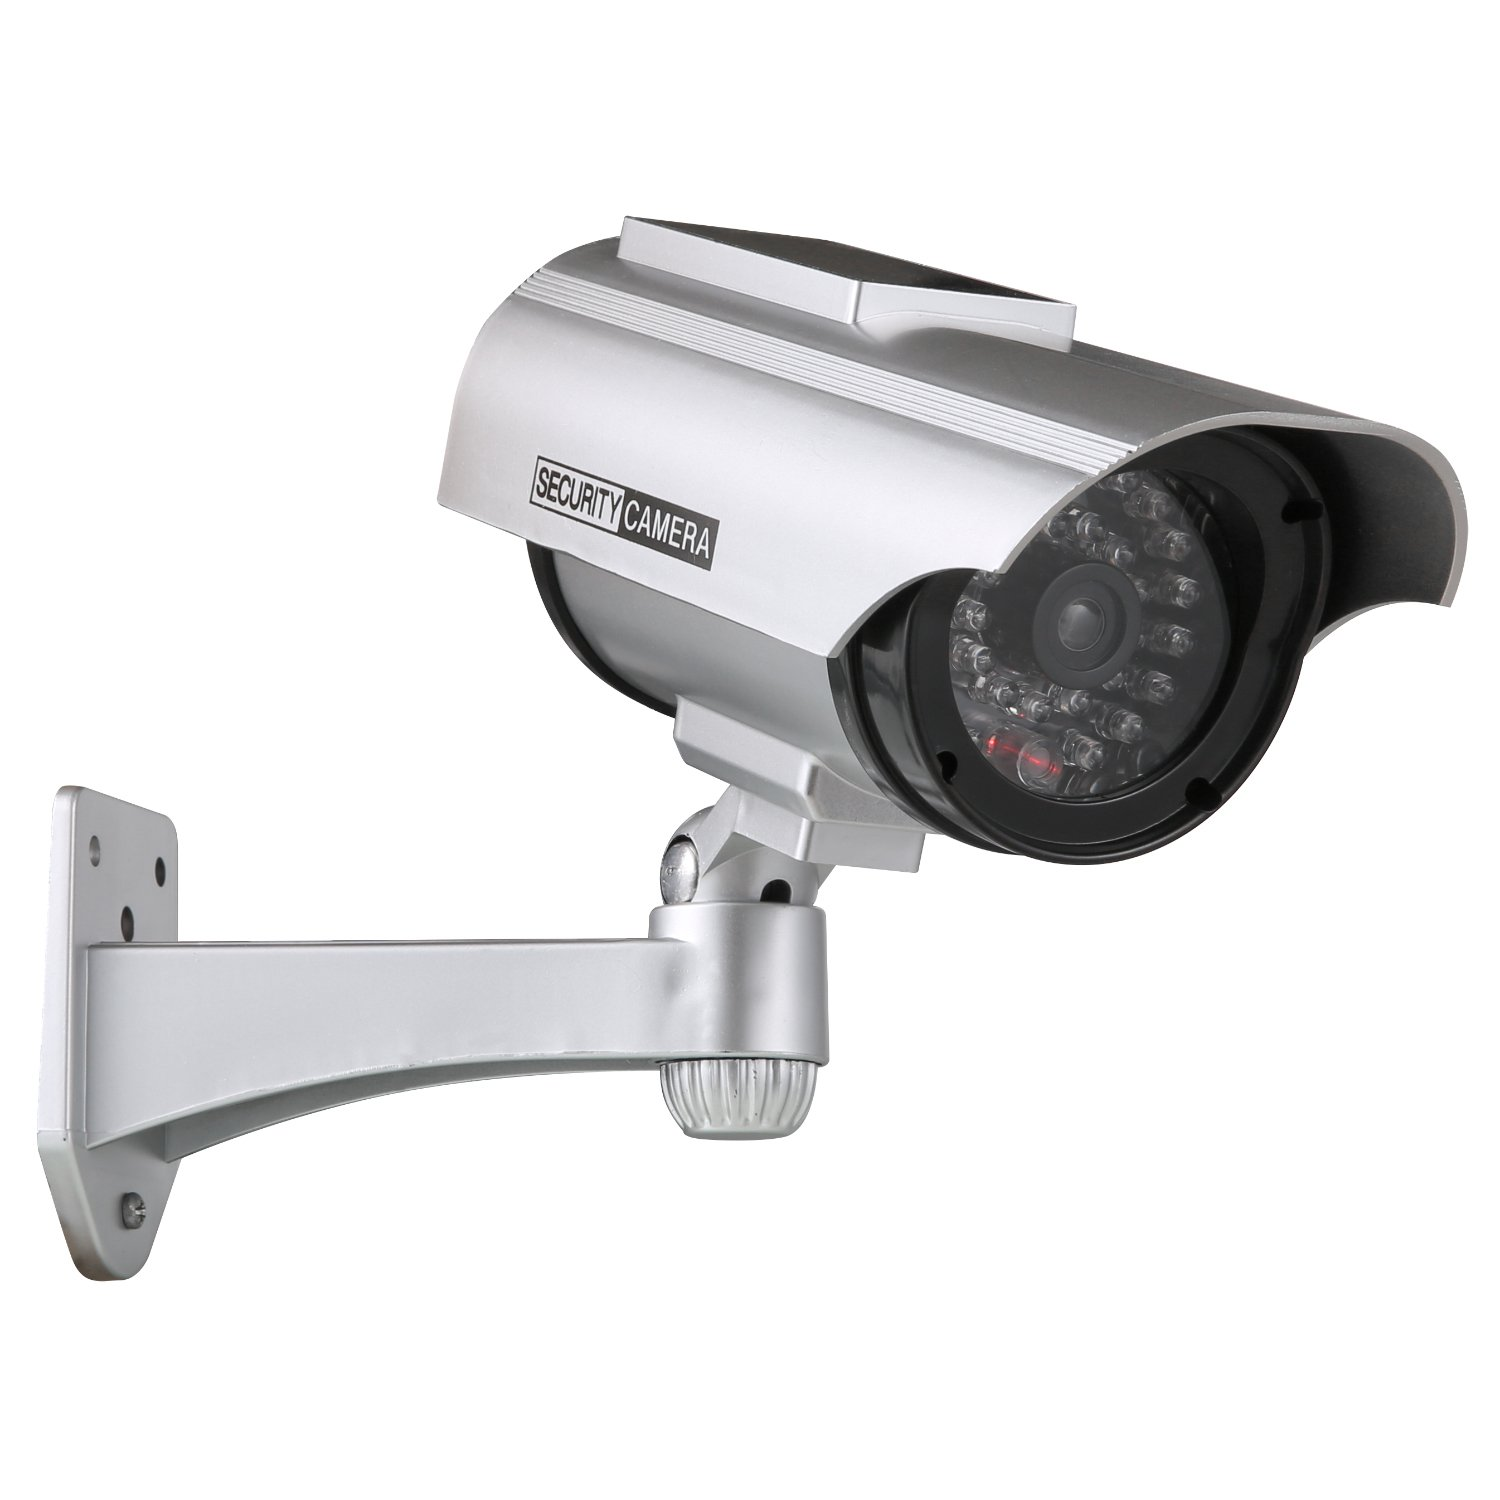 ANNKE Solar Powered Dummy Fake Security Camera with Flashing Red LED for Indoor and Outdoor use, IP56 Weatherproof by ANNKE